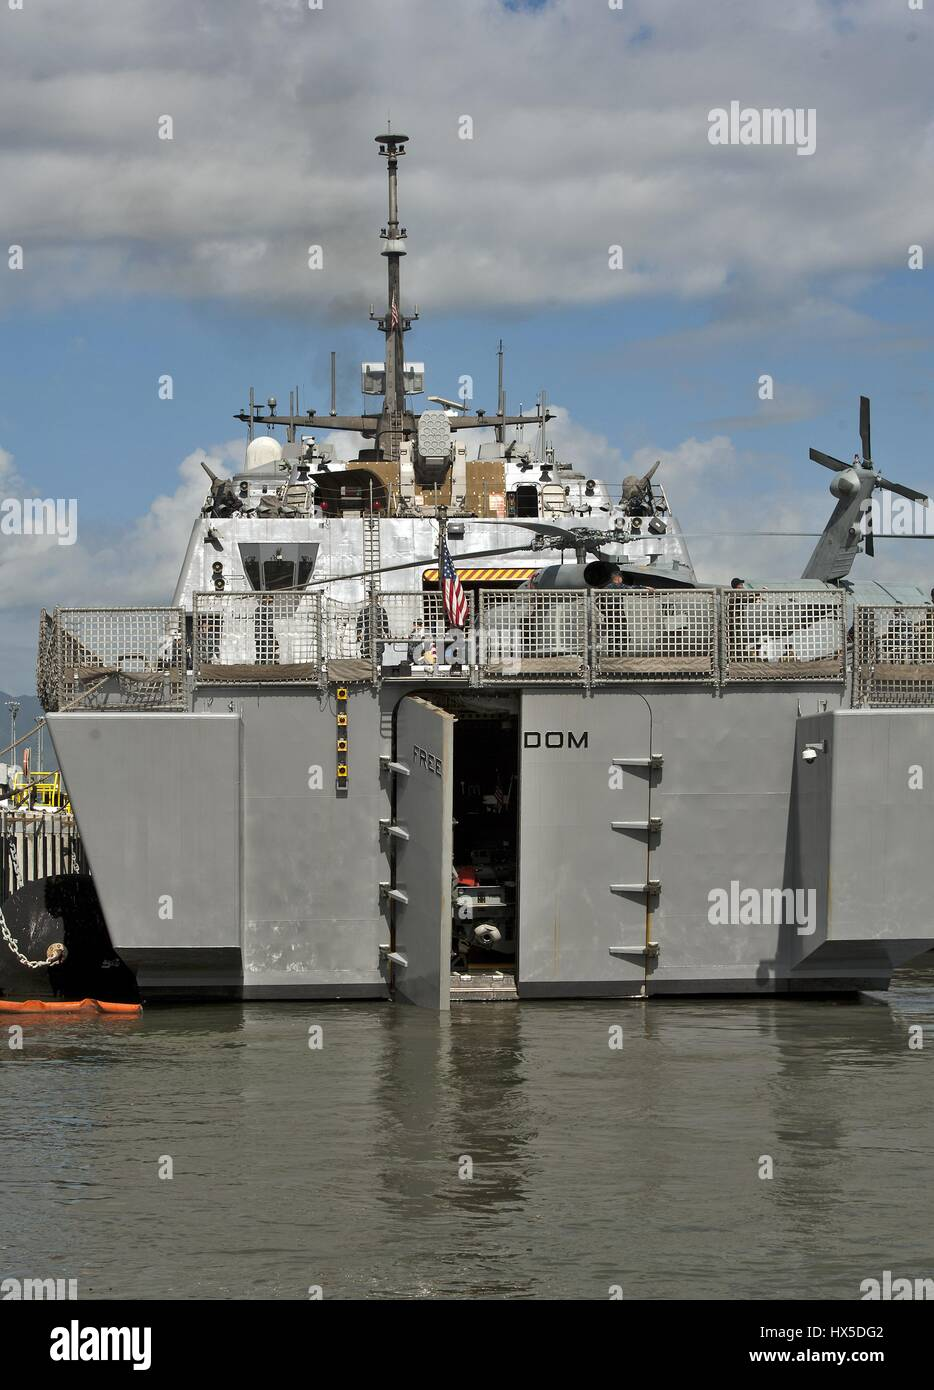 Littoral combat ship uss freedom lcs 1 arrives at joint base pearl stock photo royalty free - Uss freedom lcs 1 photos ...